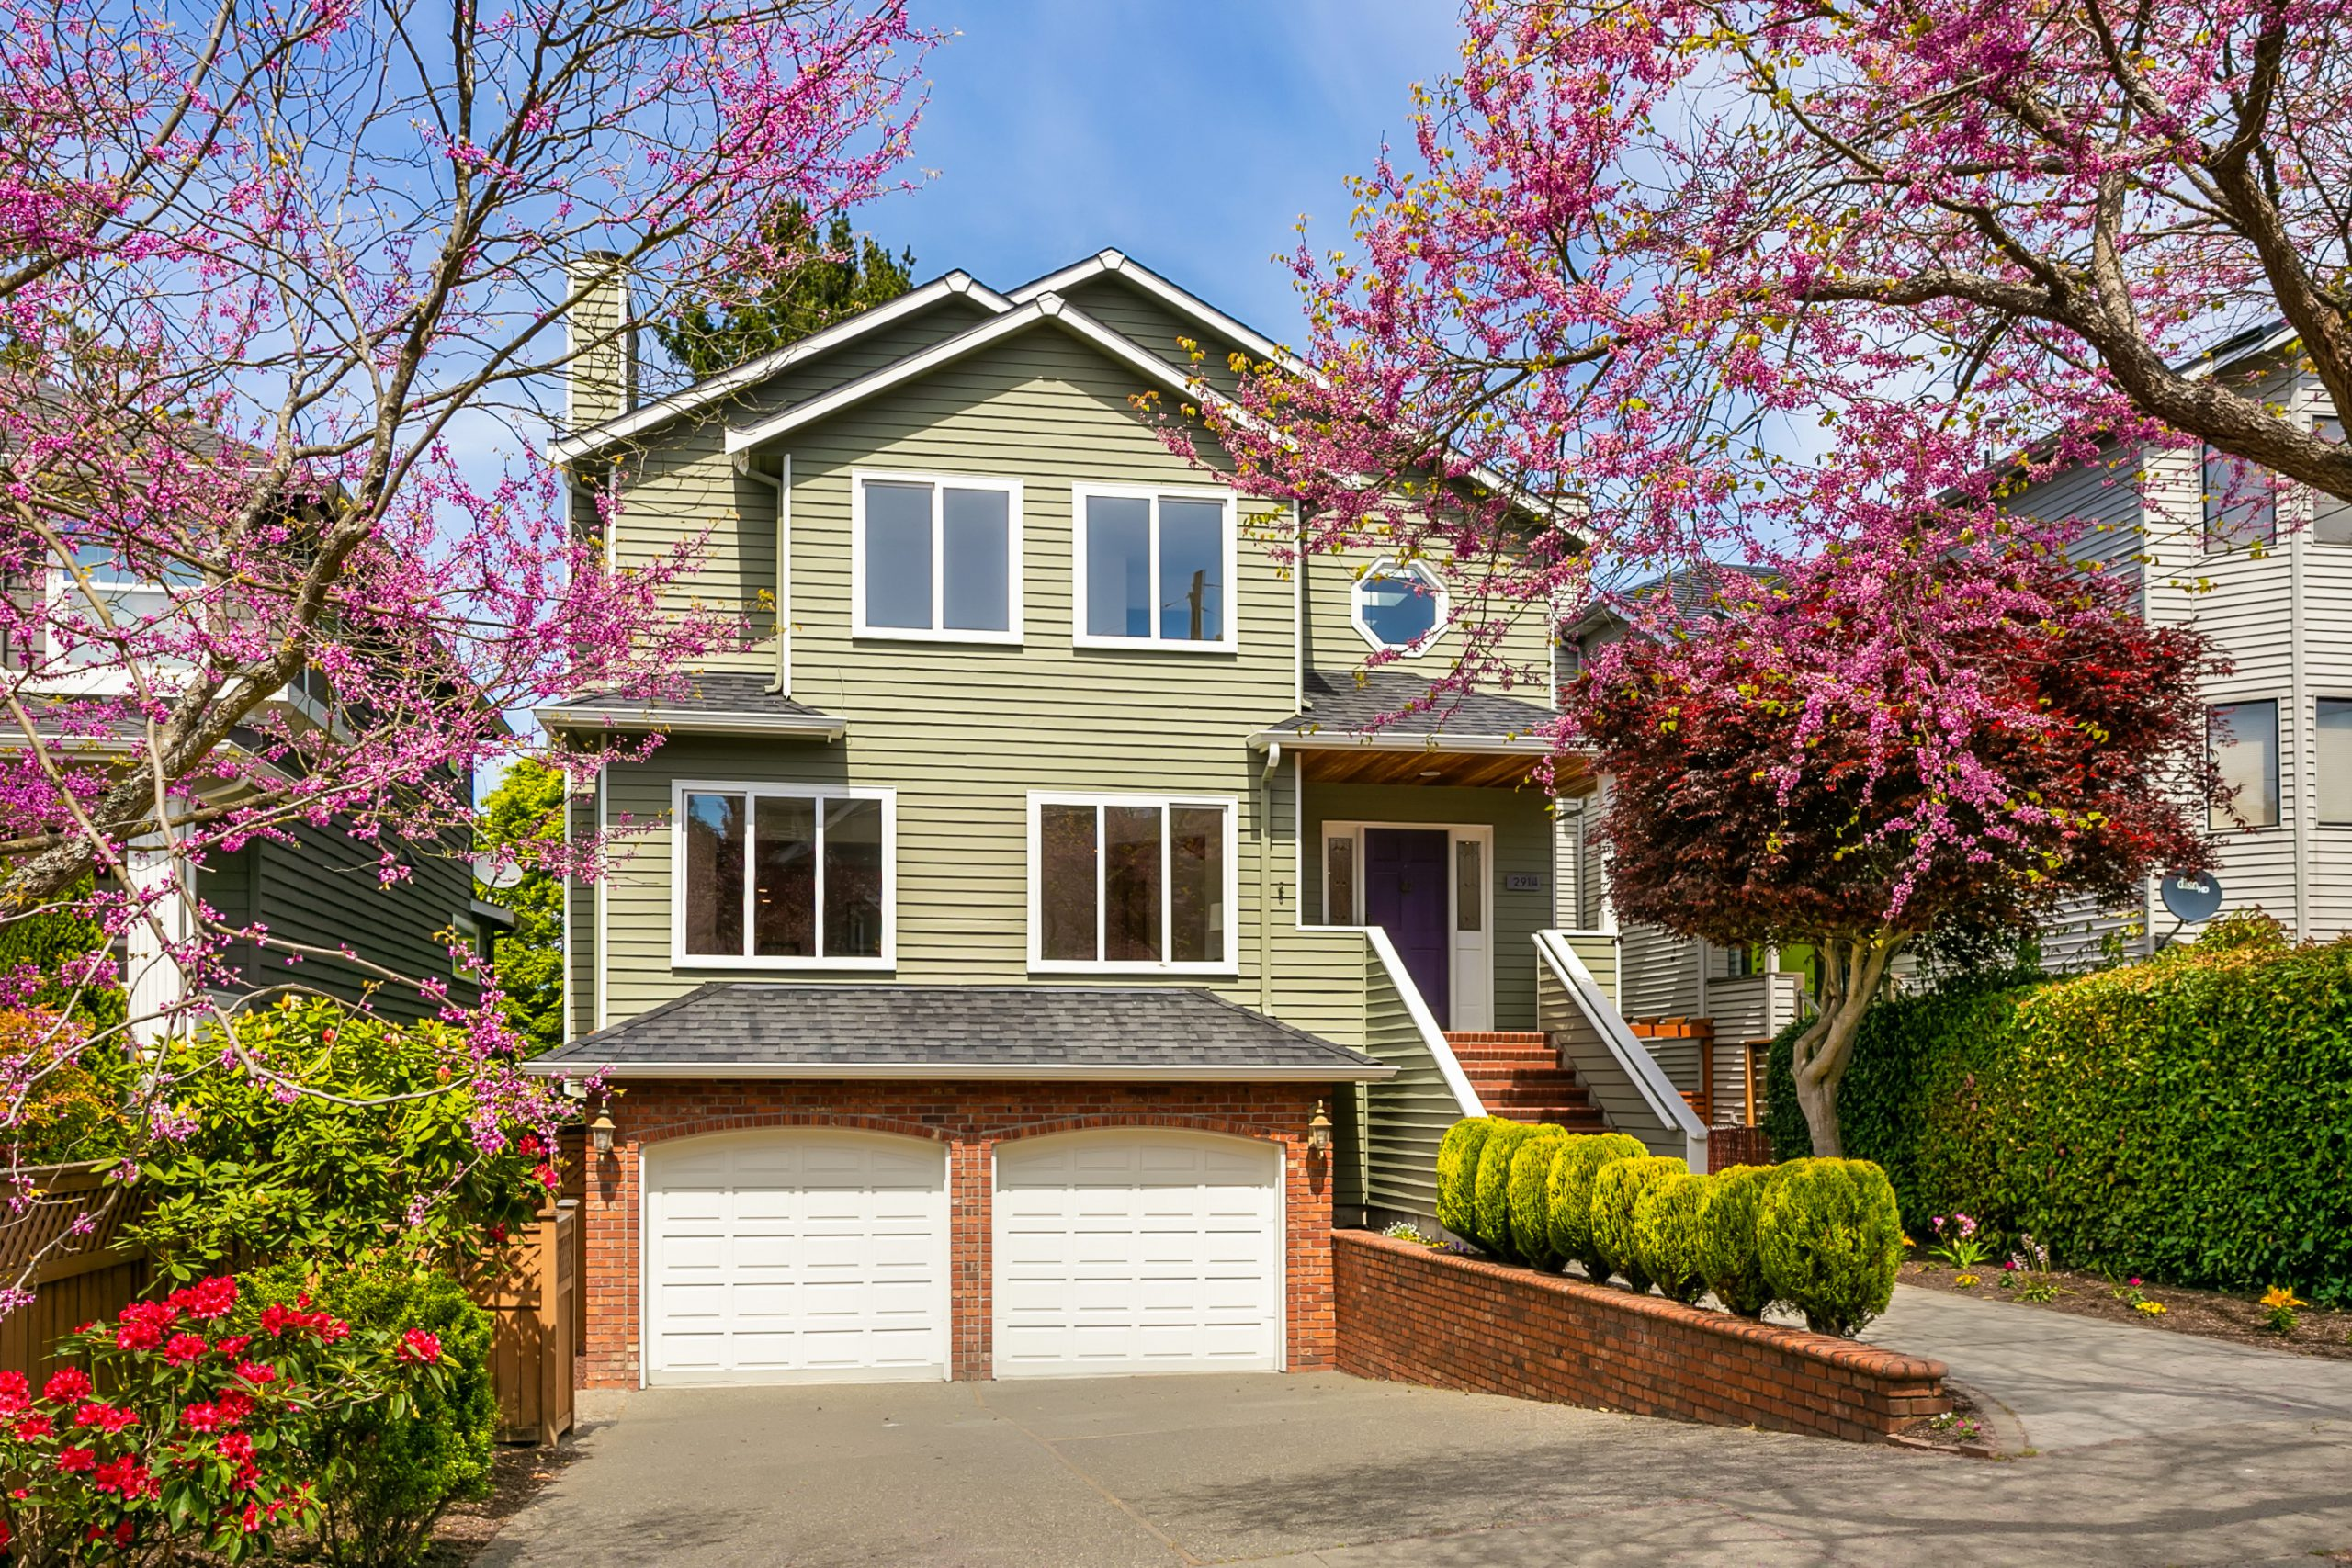 The Principles of High Definition Real Estate Photography